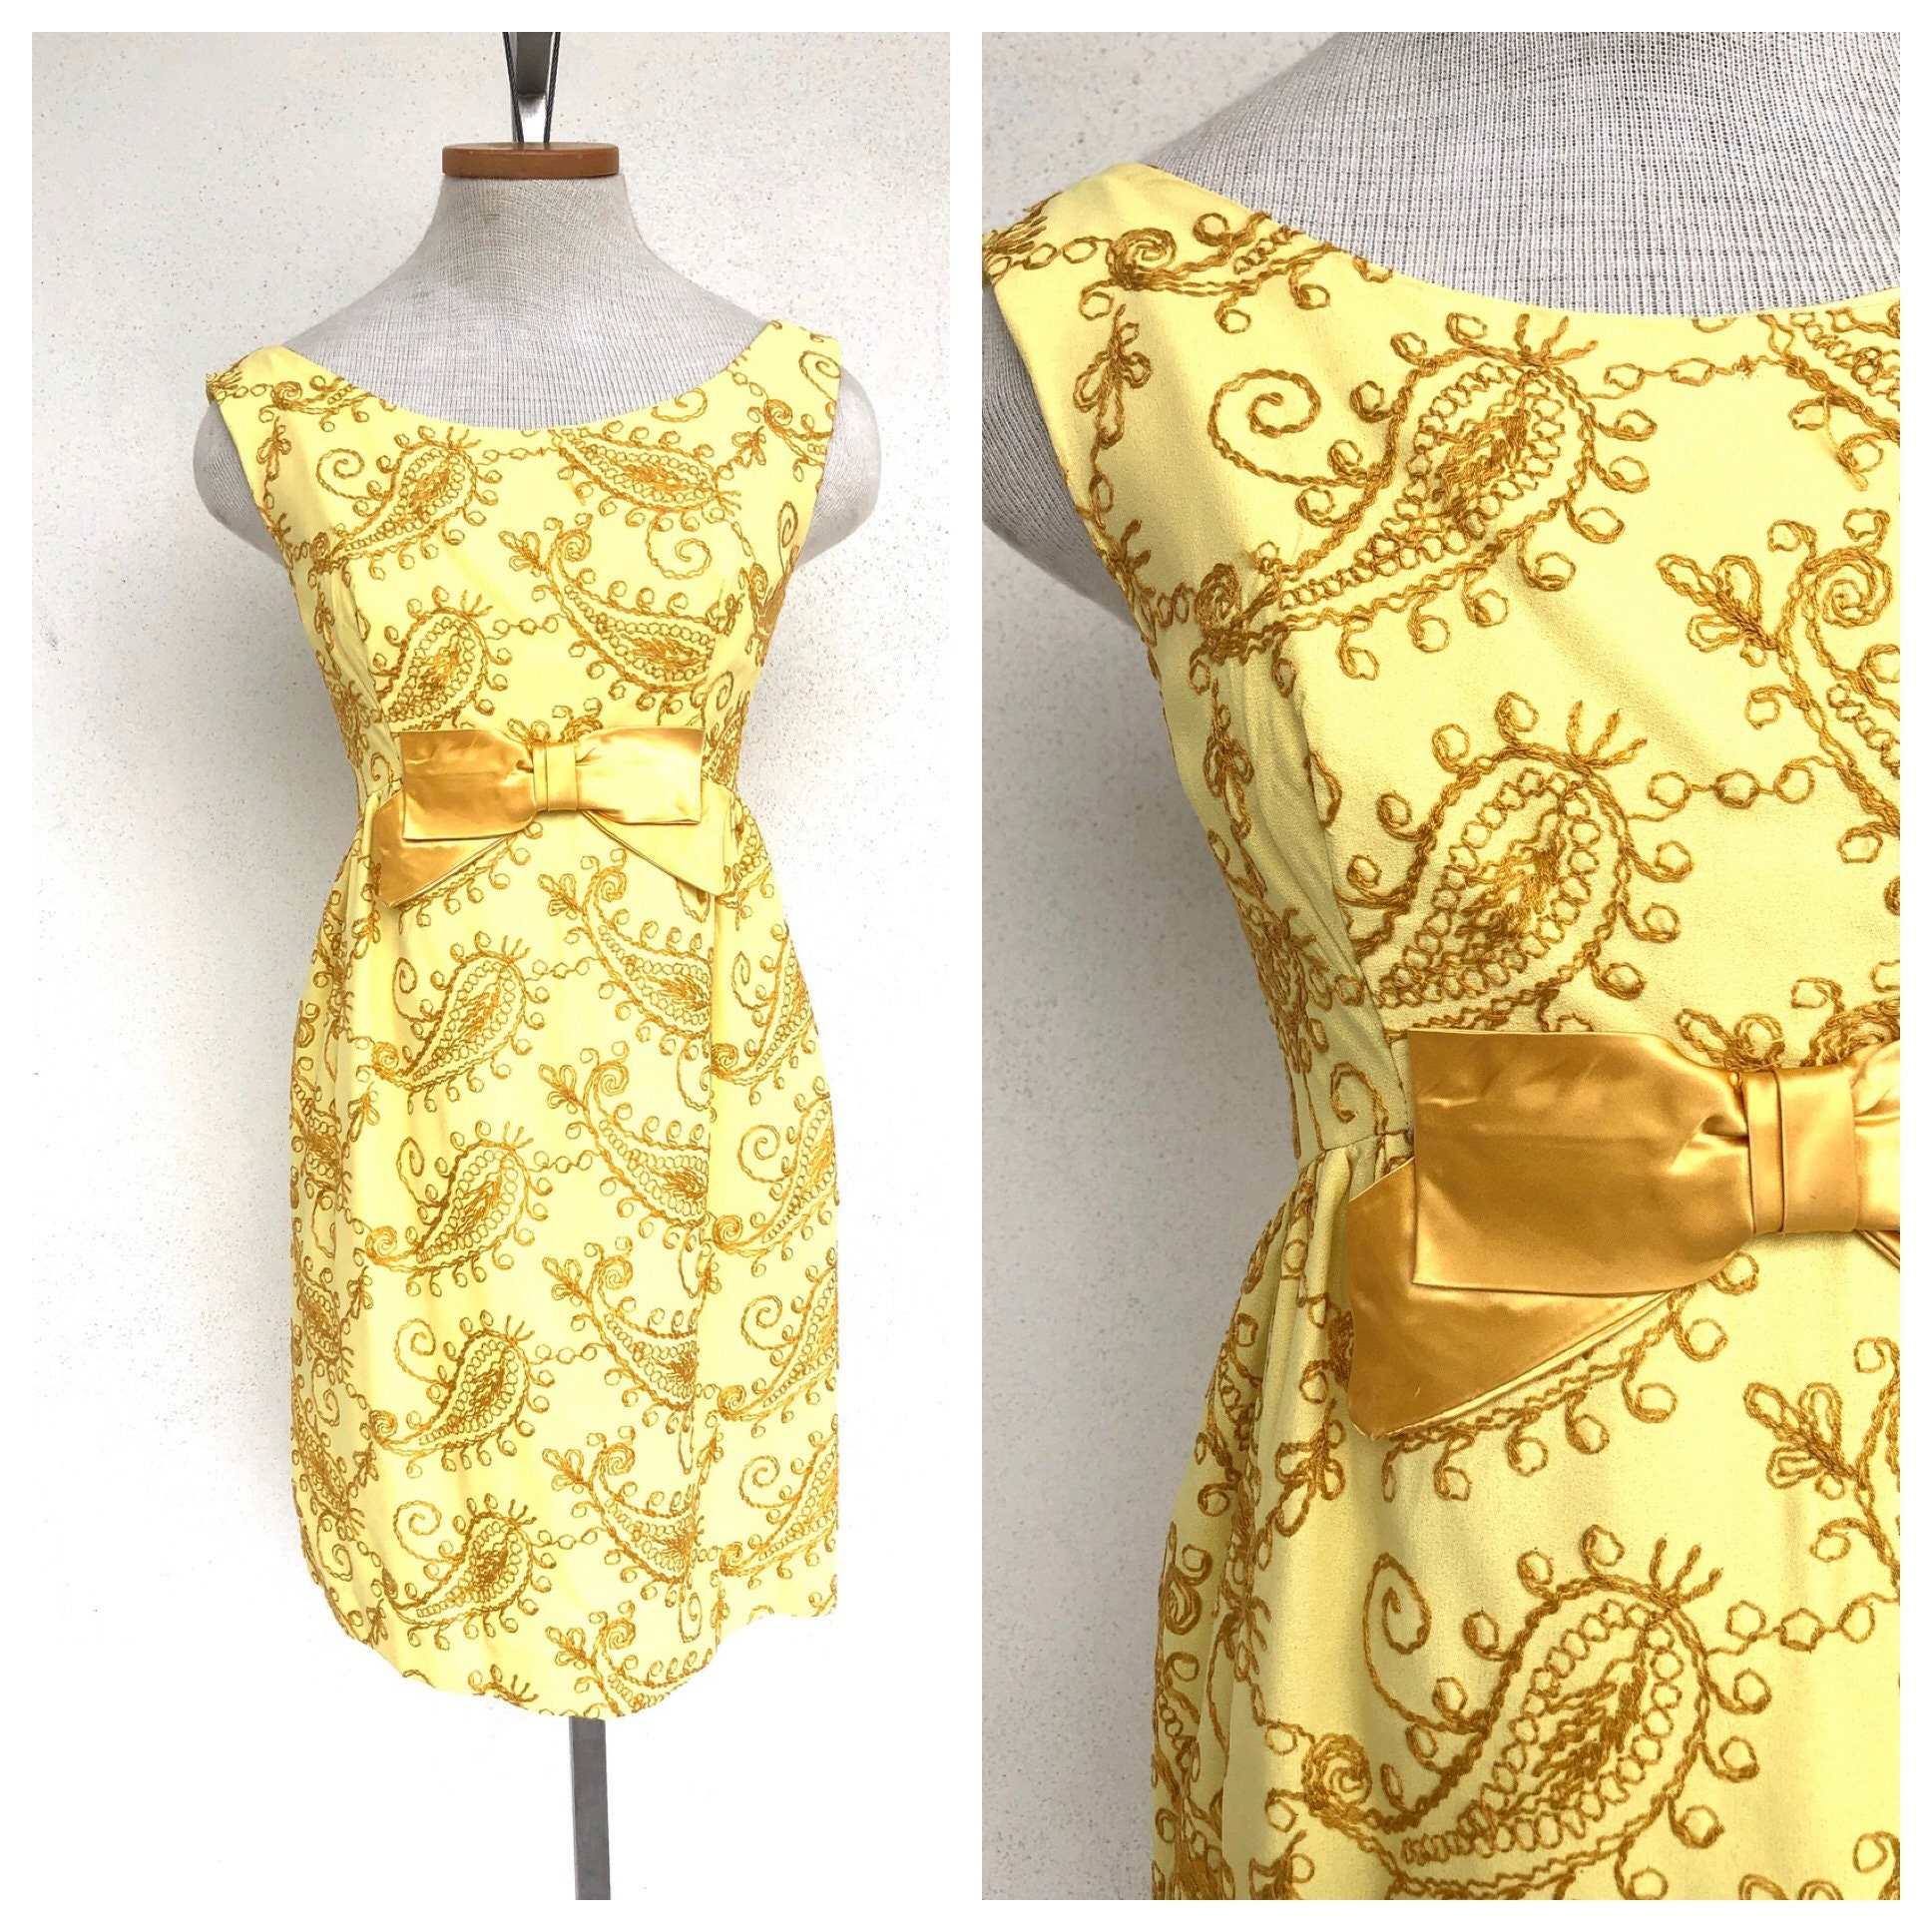 60s -70s Jewelry – Necklaces, Earrings, Rings, Bracelets 60S Lemon Yellow Embroidered Dress $0.00 AT vintagedancer.com